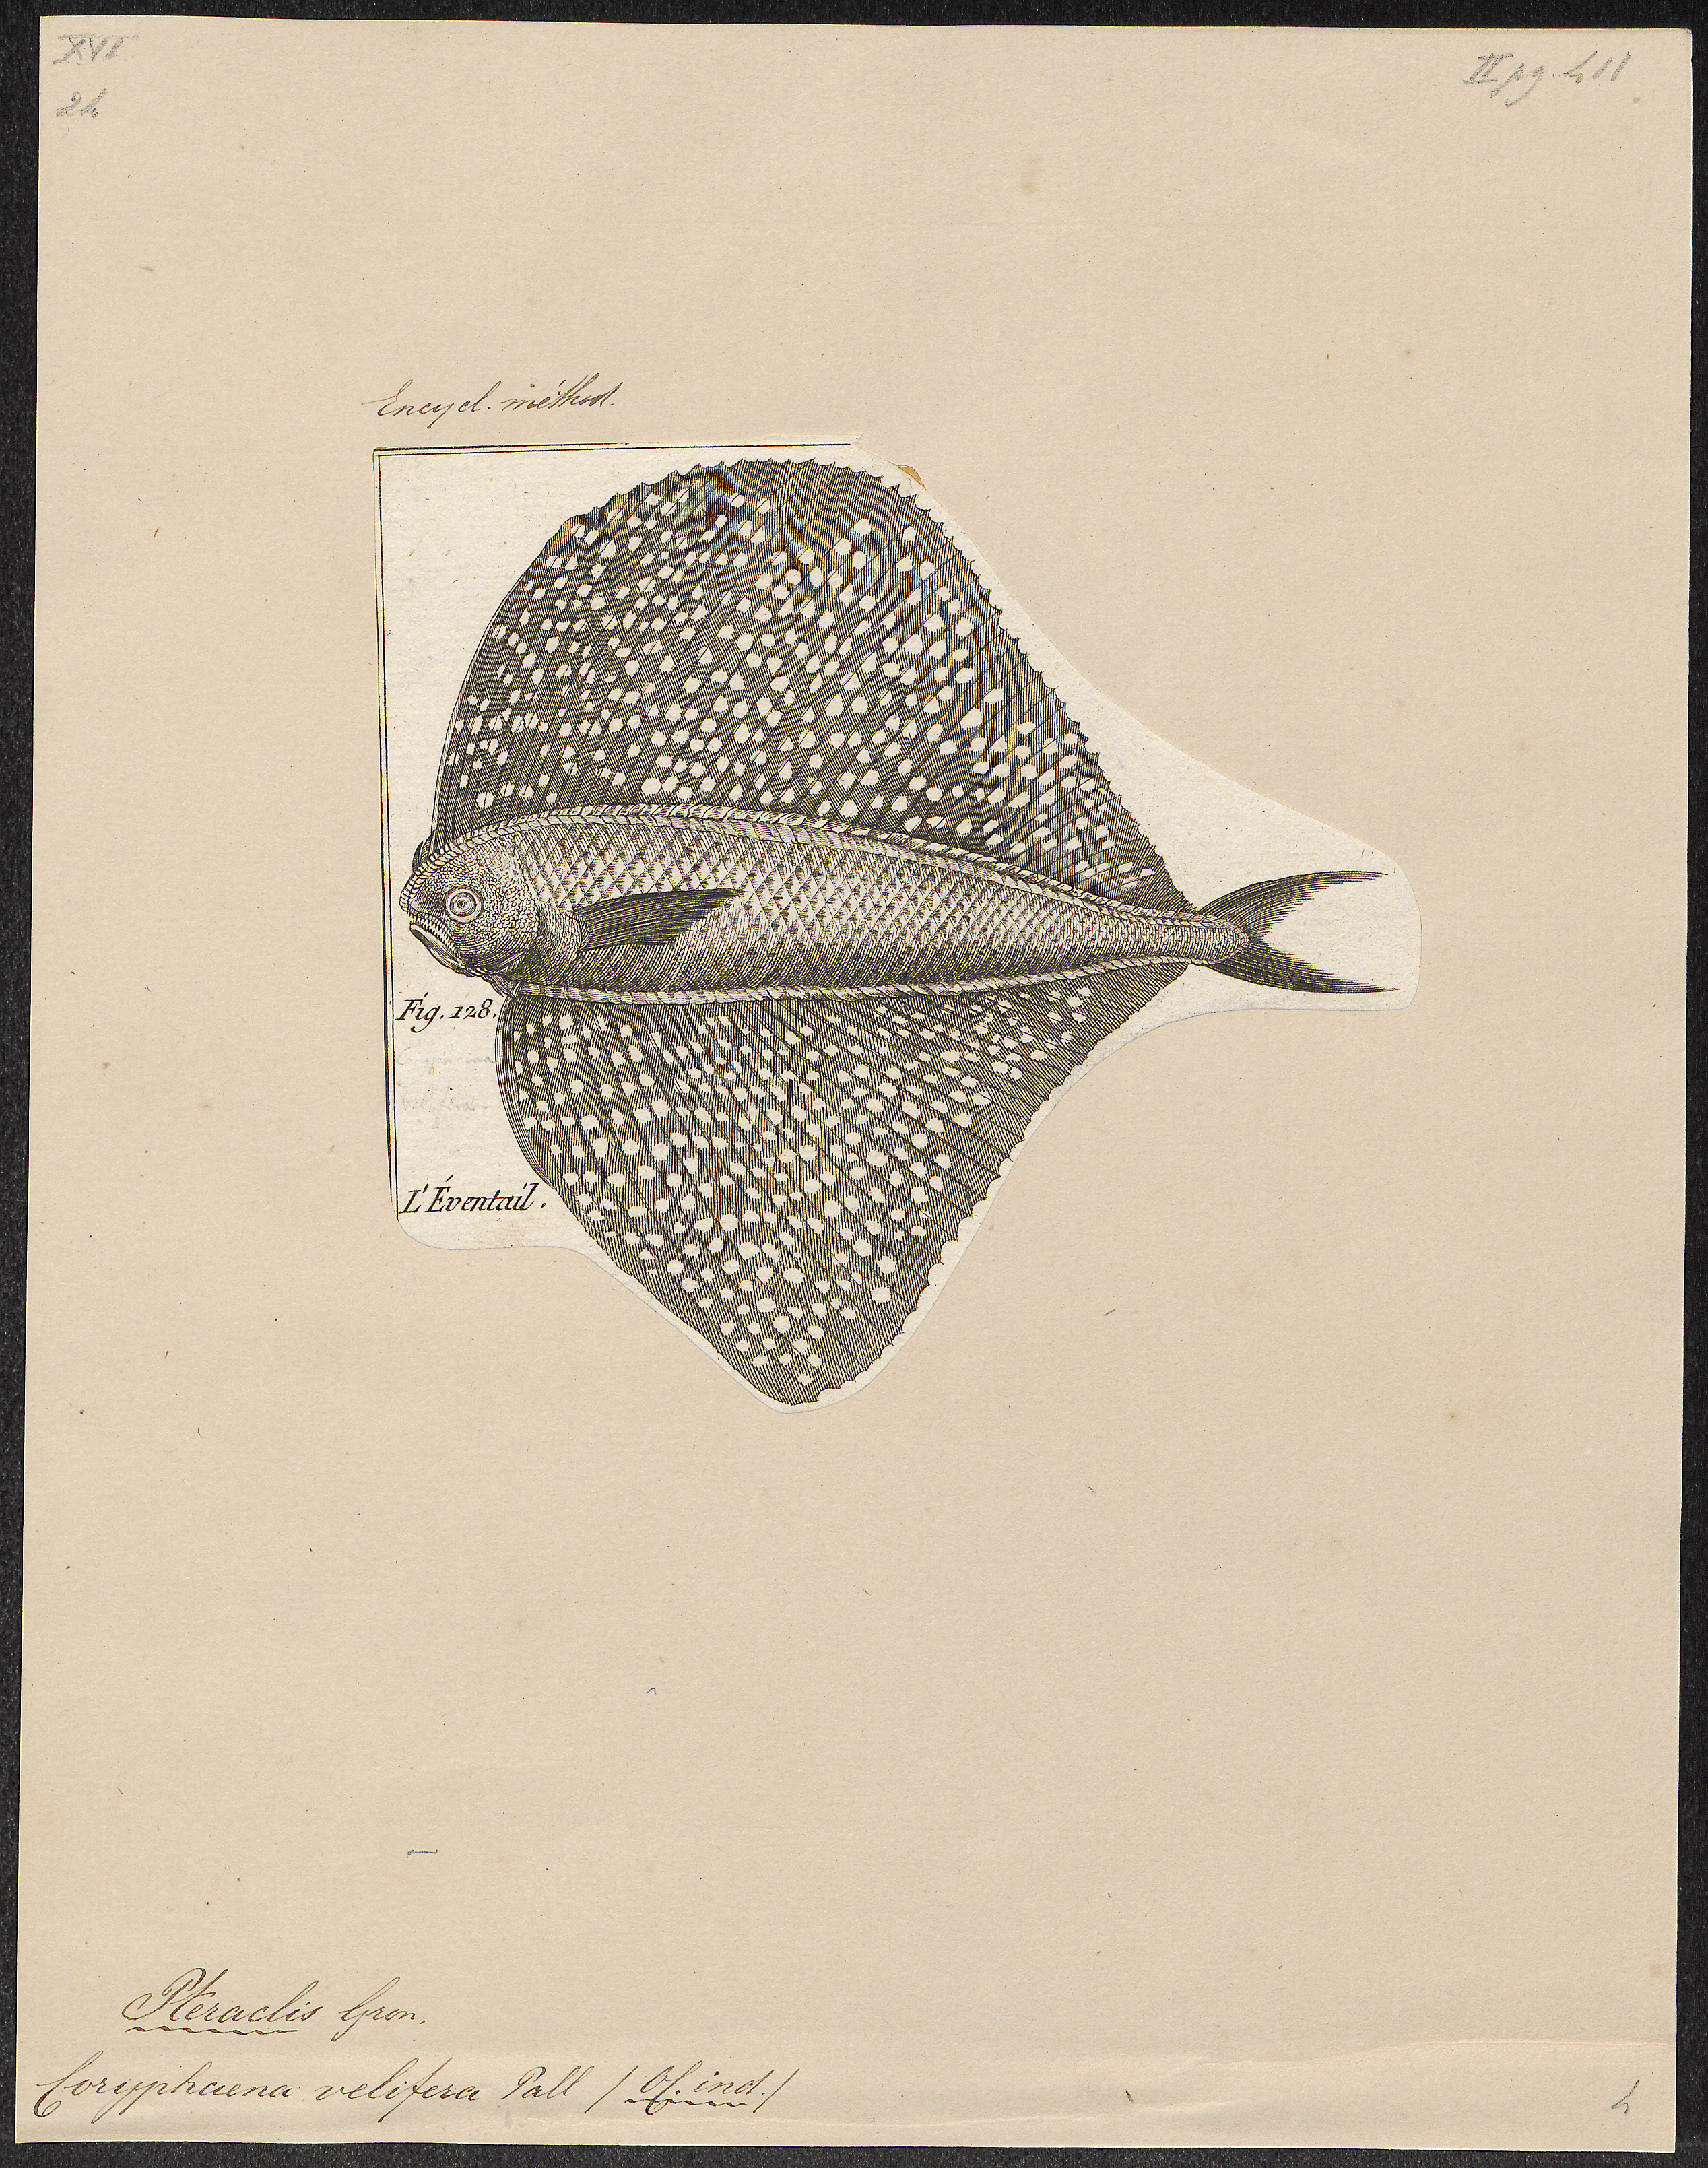 Image of Spotted fanfish